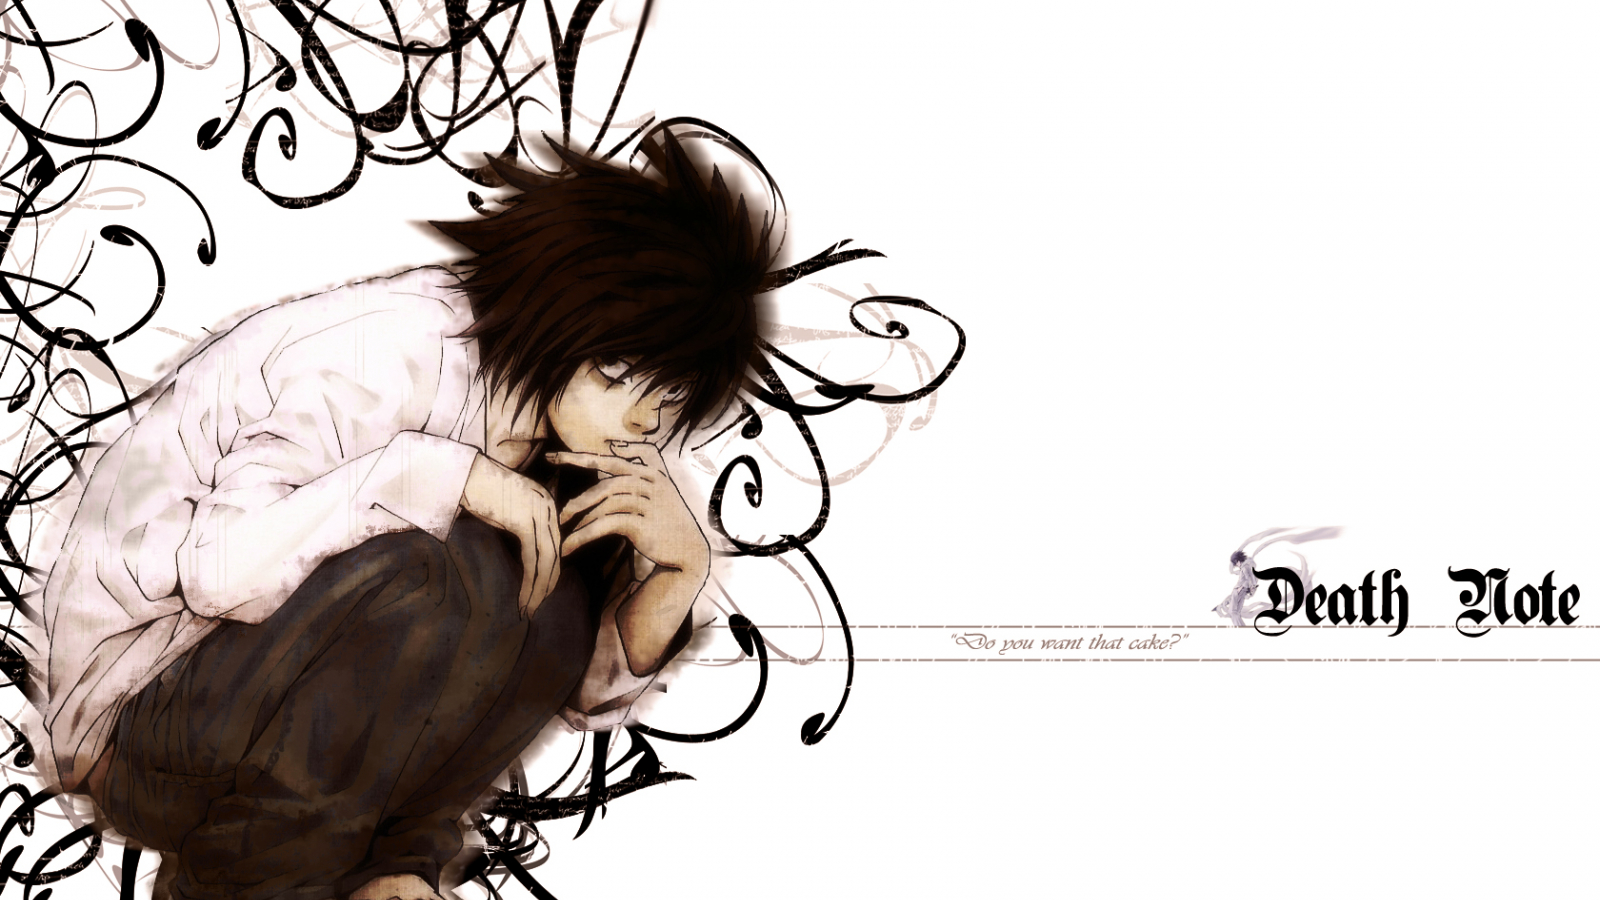 Free Download Deathnote L Page 6 1680x1050 For Your Desktop